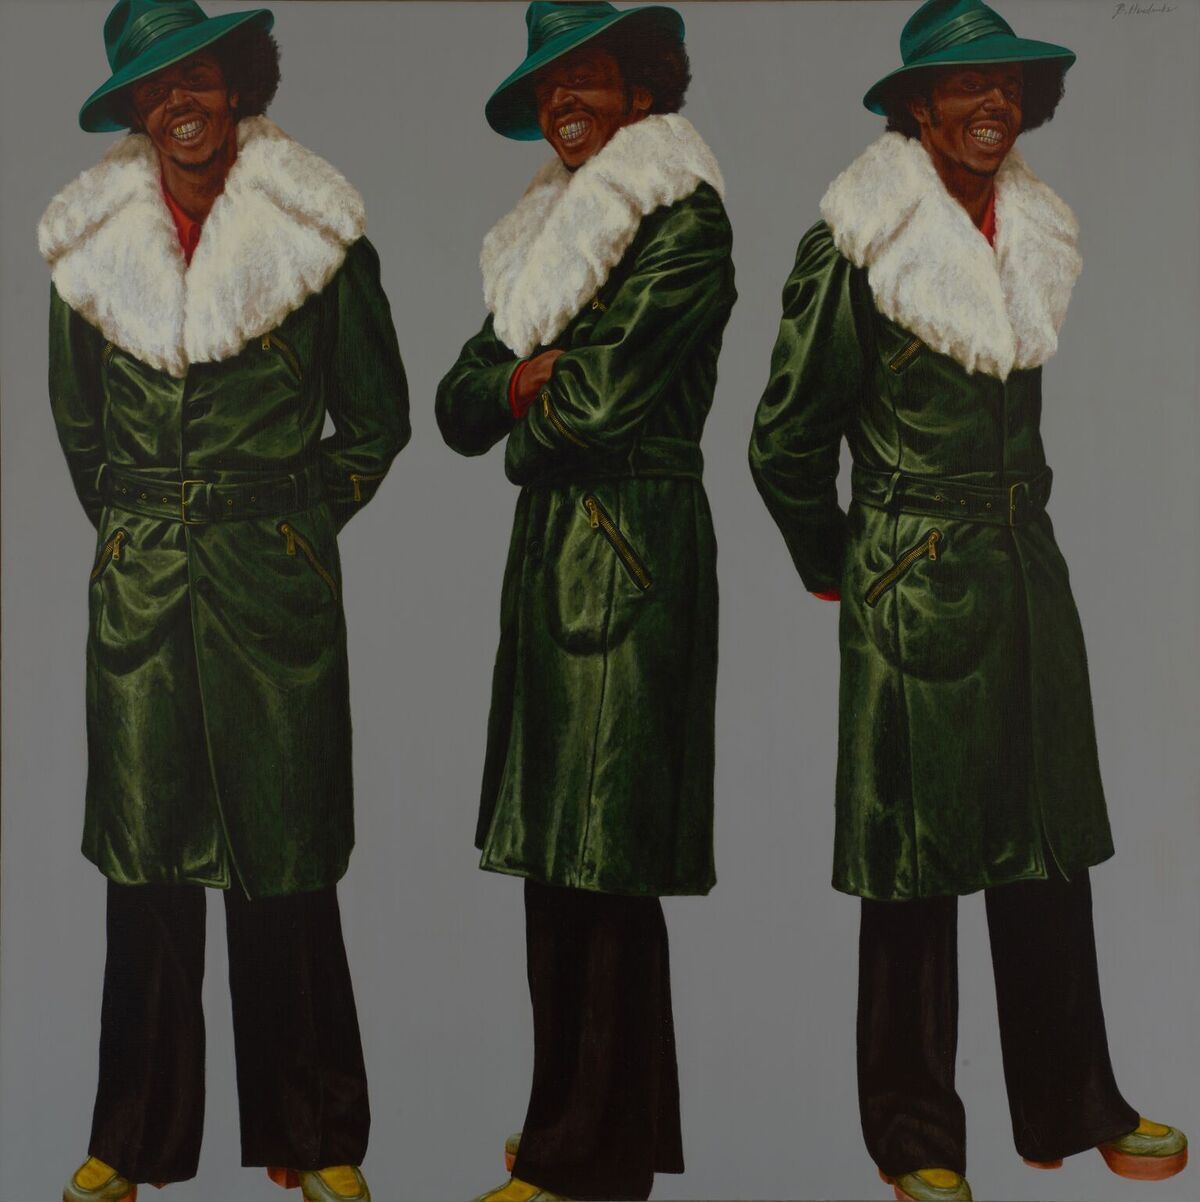 Barkley L. Hendricks, Northern Lights, 1976. Courtesy of Bowdoin College Museum of Art.